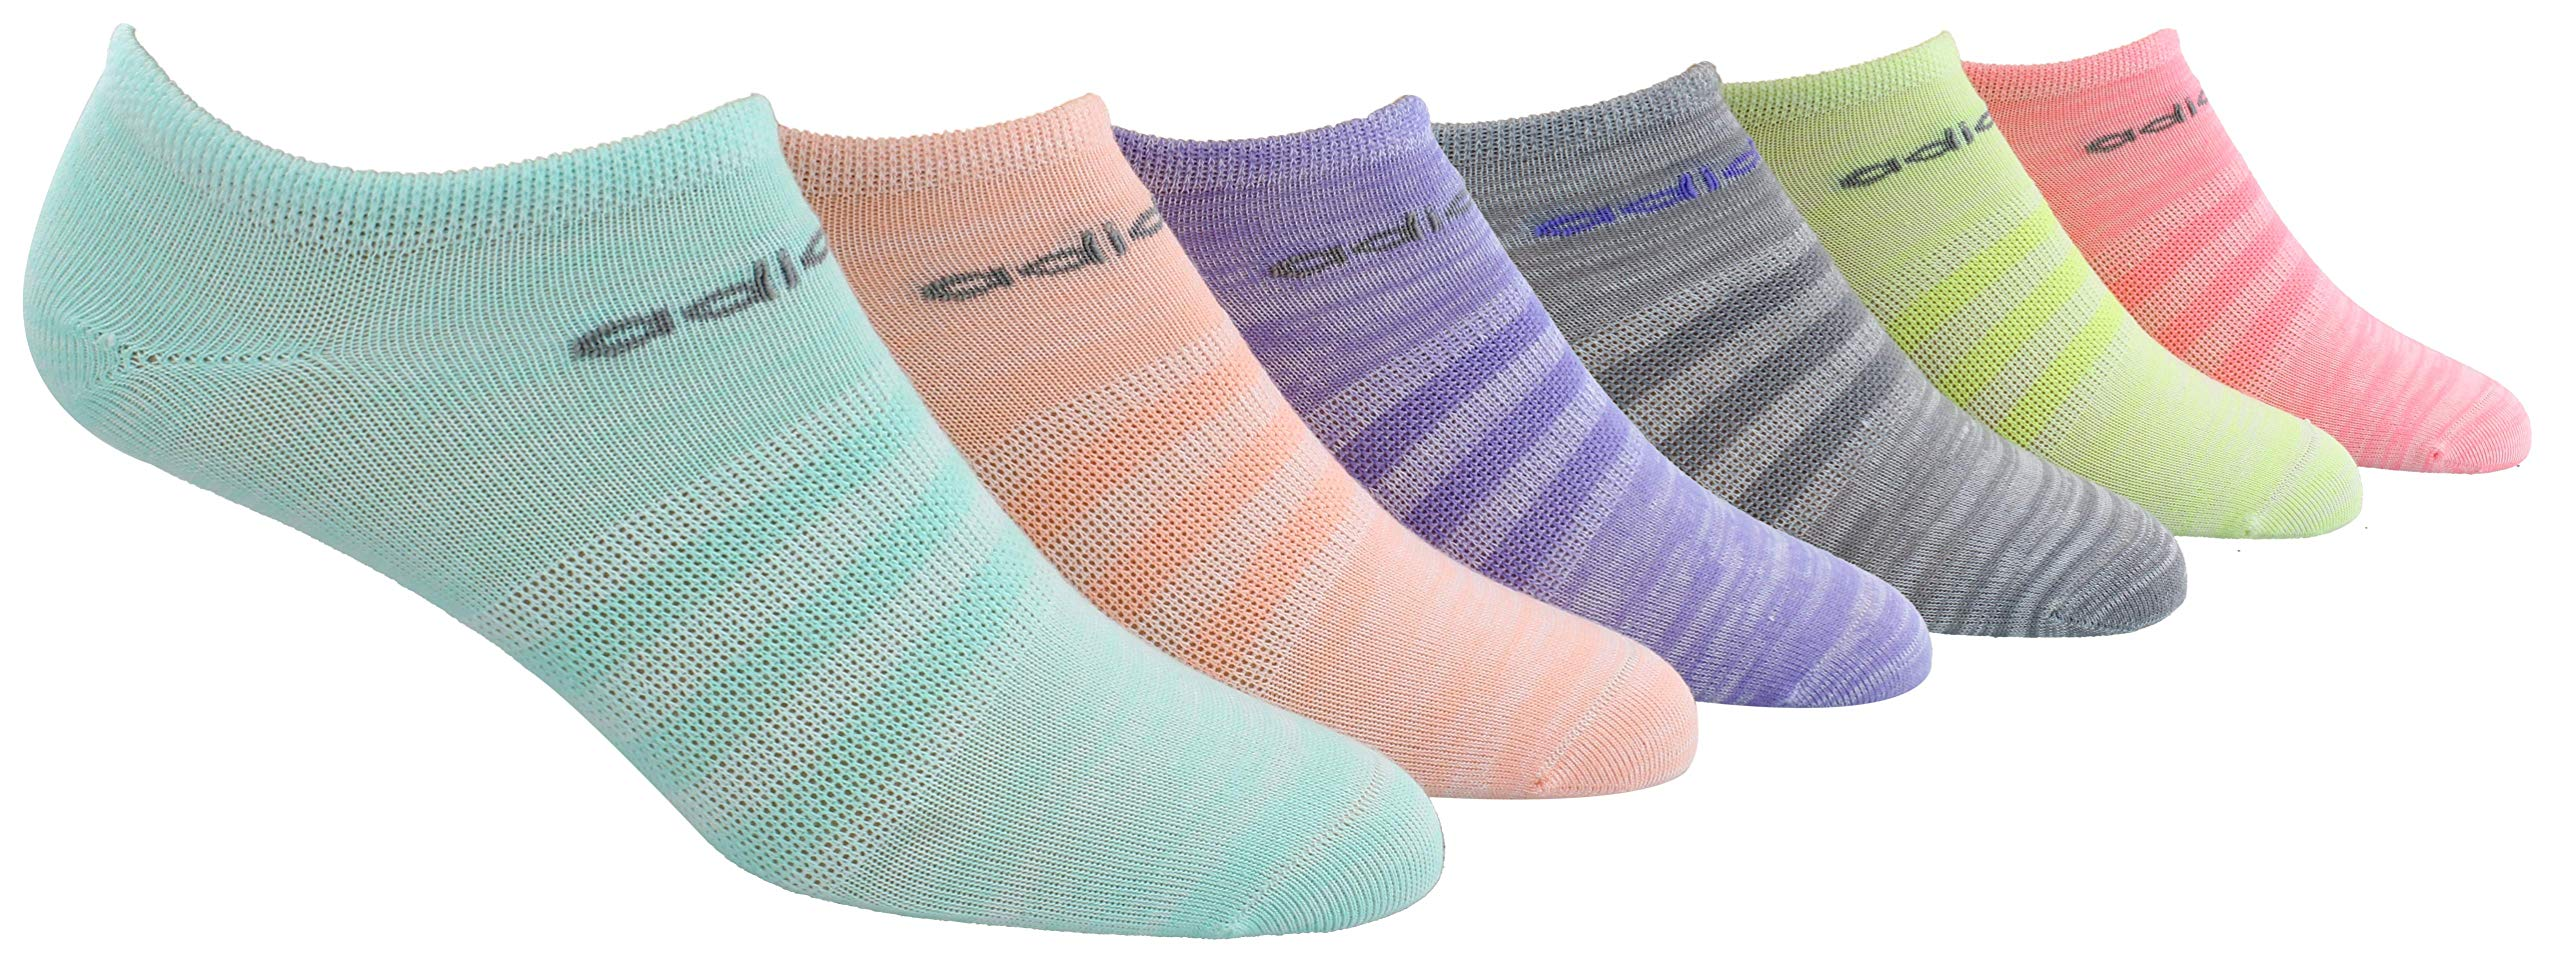 adidas Youth Kids-Girl's Superlite No Show Socks (6 Pair), Easy Green/Light Flash Orange/Light Flash Purple/L, Large, (Shoe Size 3Y-9) by adidas